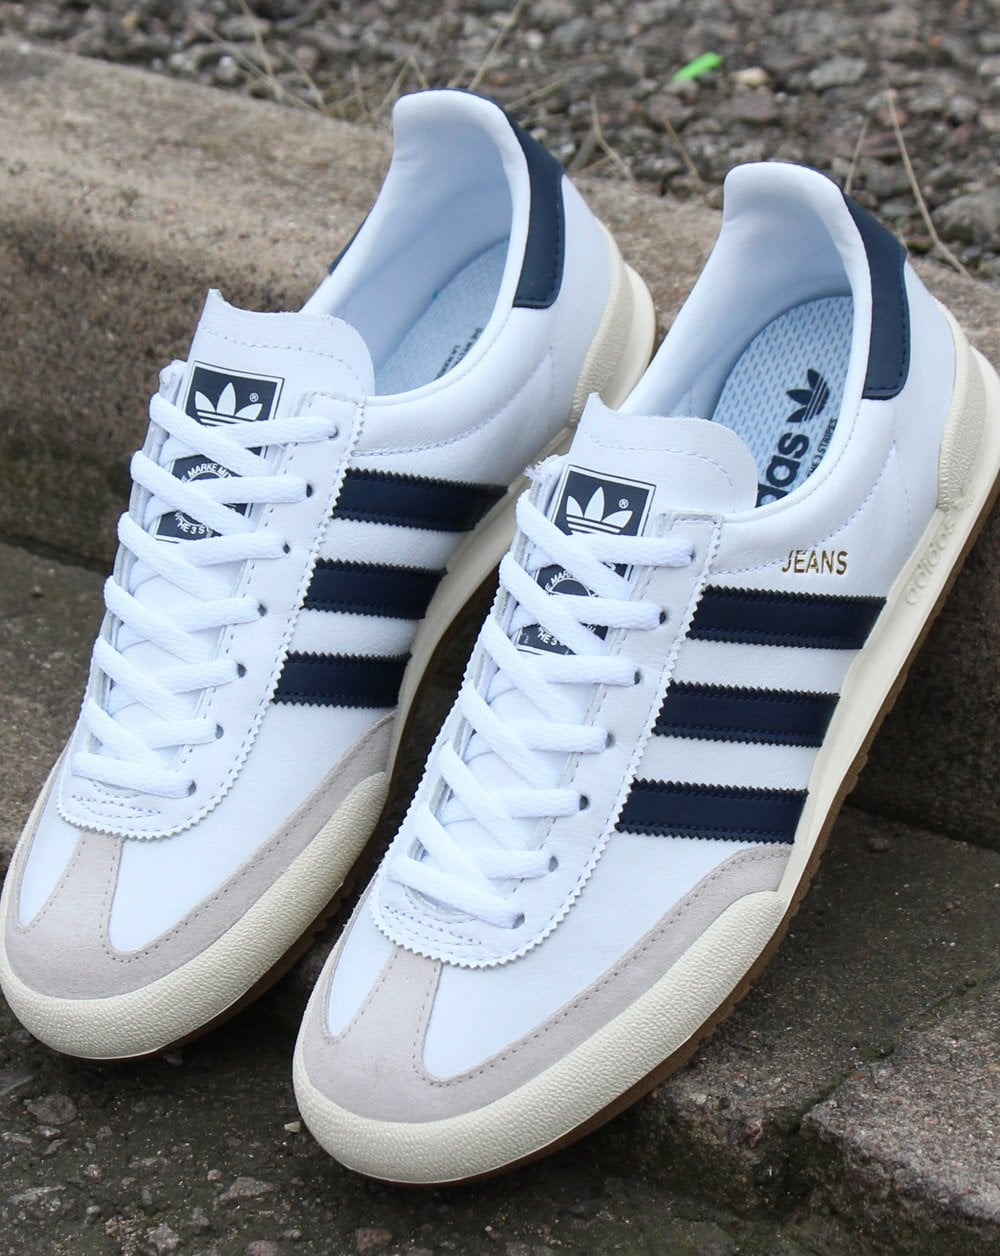 Adidas Jeans Trainers White/navy